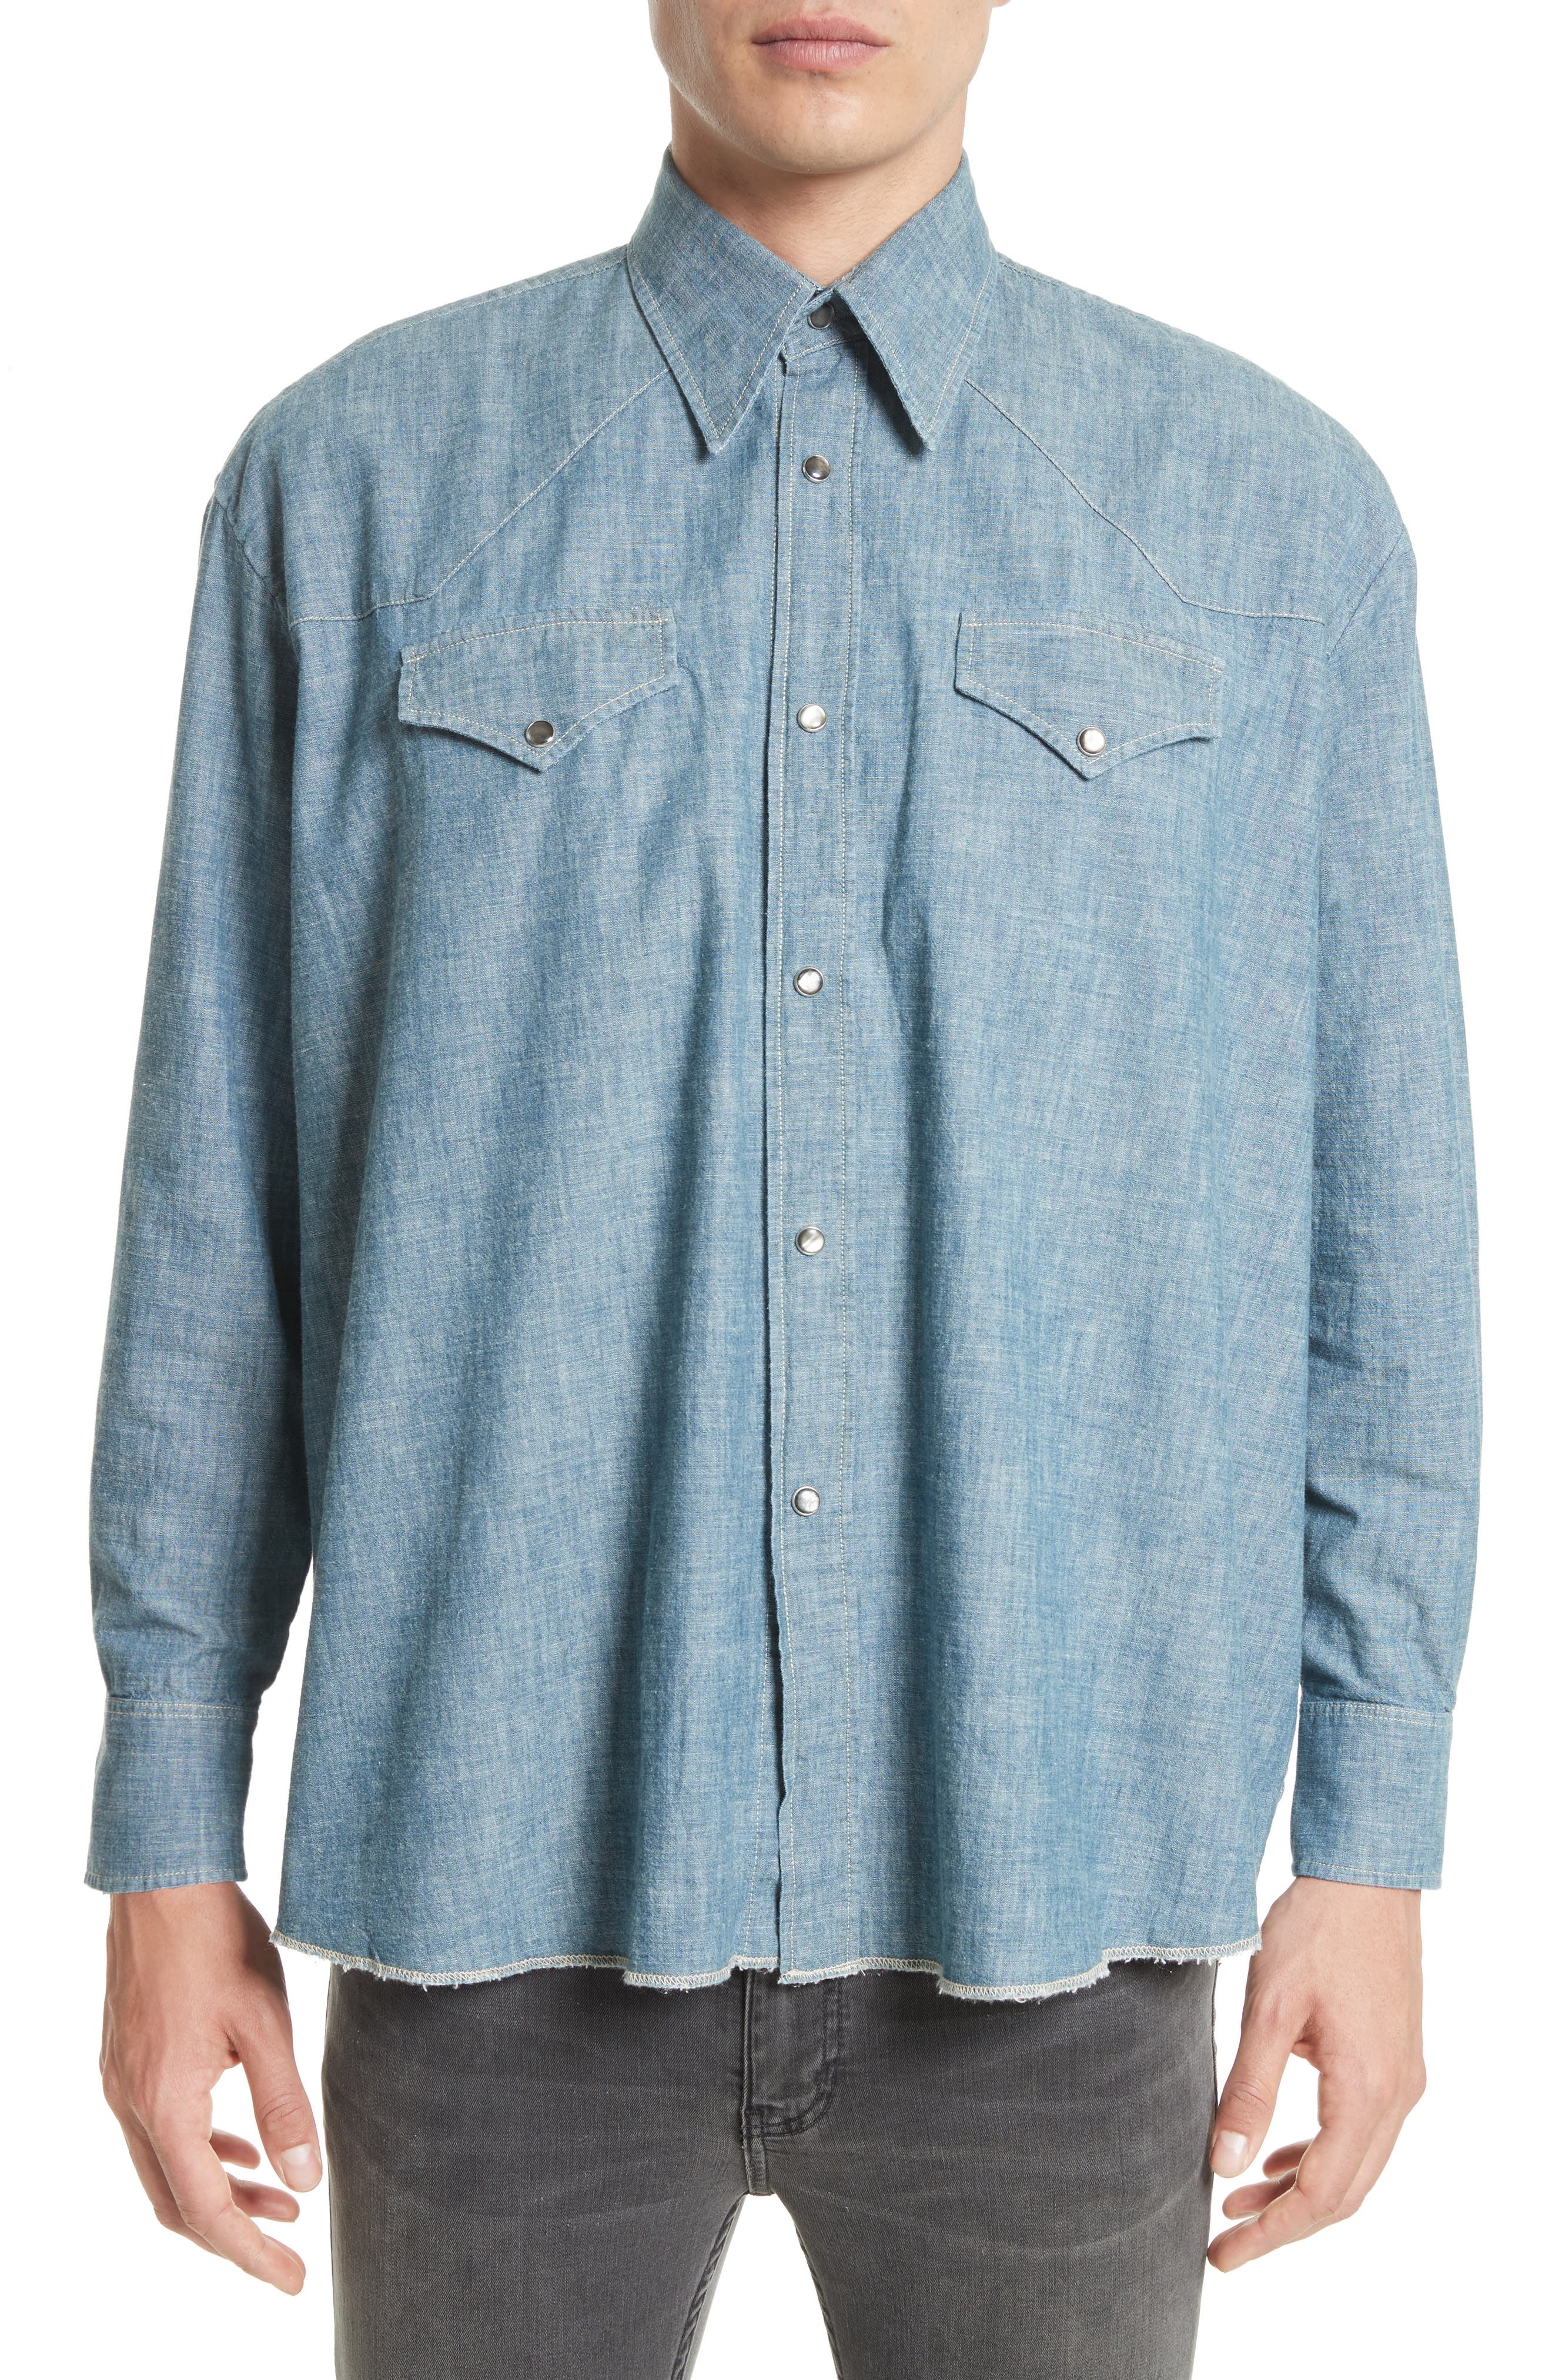 Alternate Image 1 Selected - OUR LEGACY Oversize Chambray Snap Front Shirt